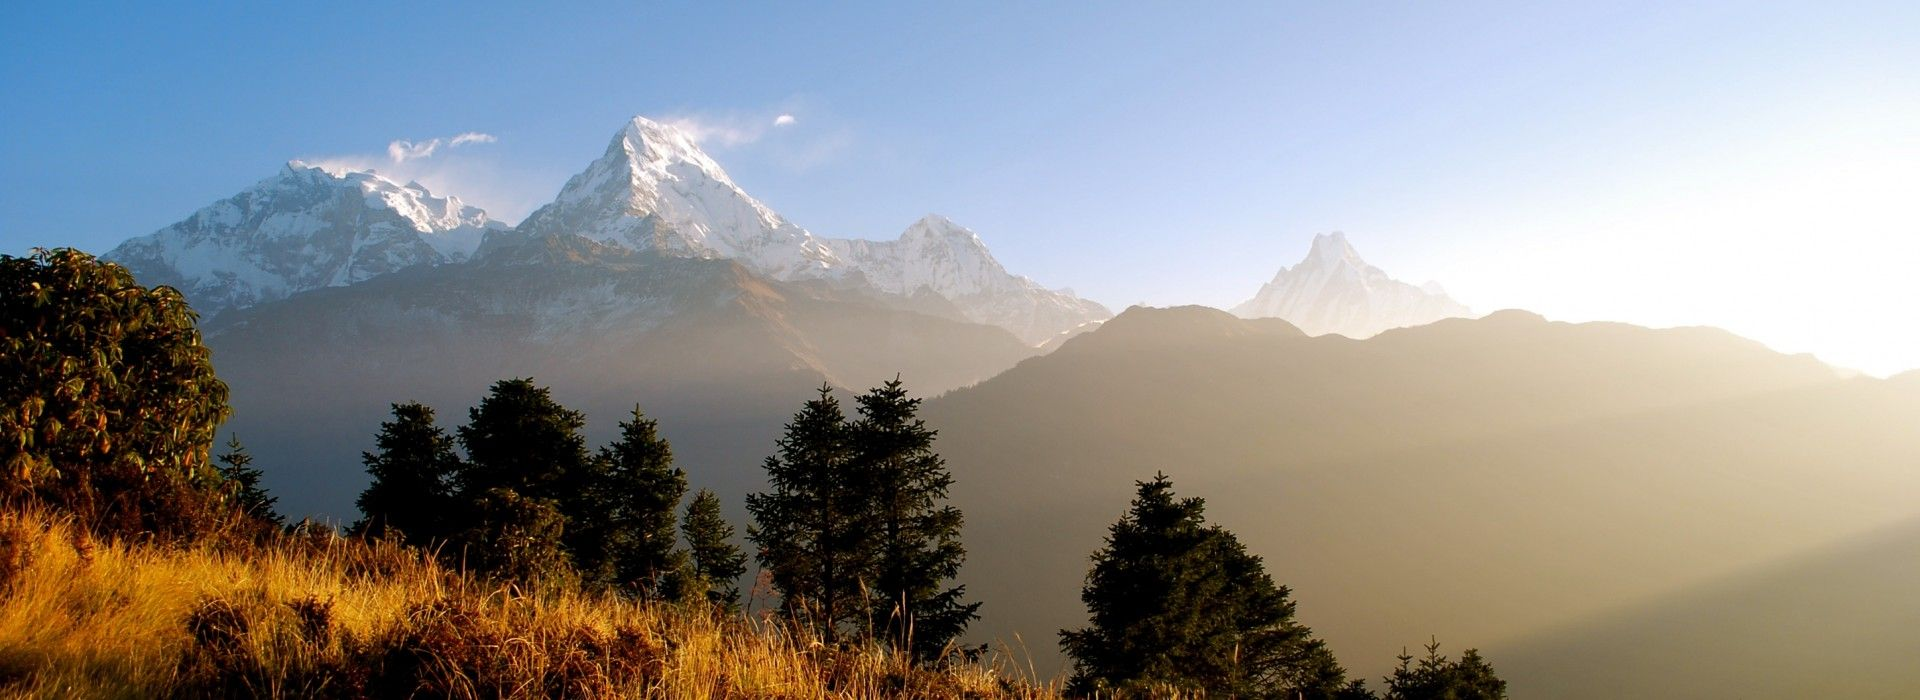 Air tours, road trips and transfers in Nepal